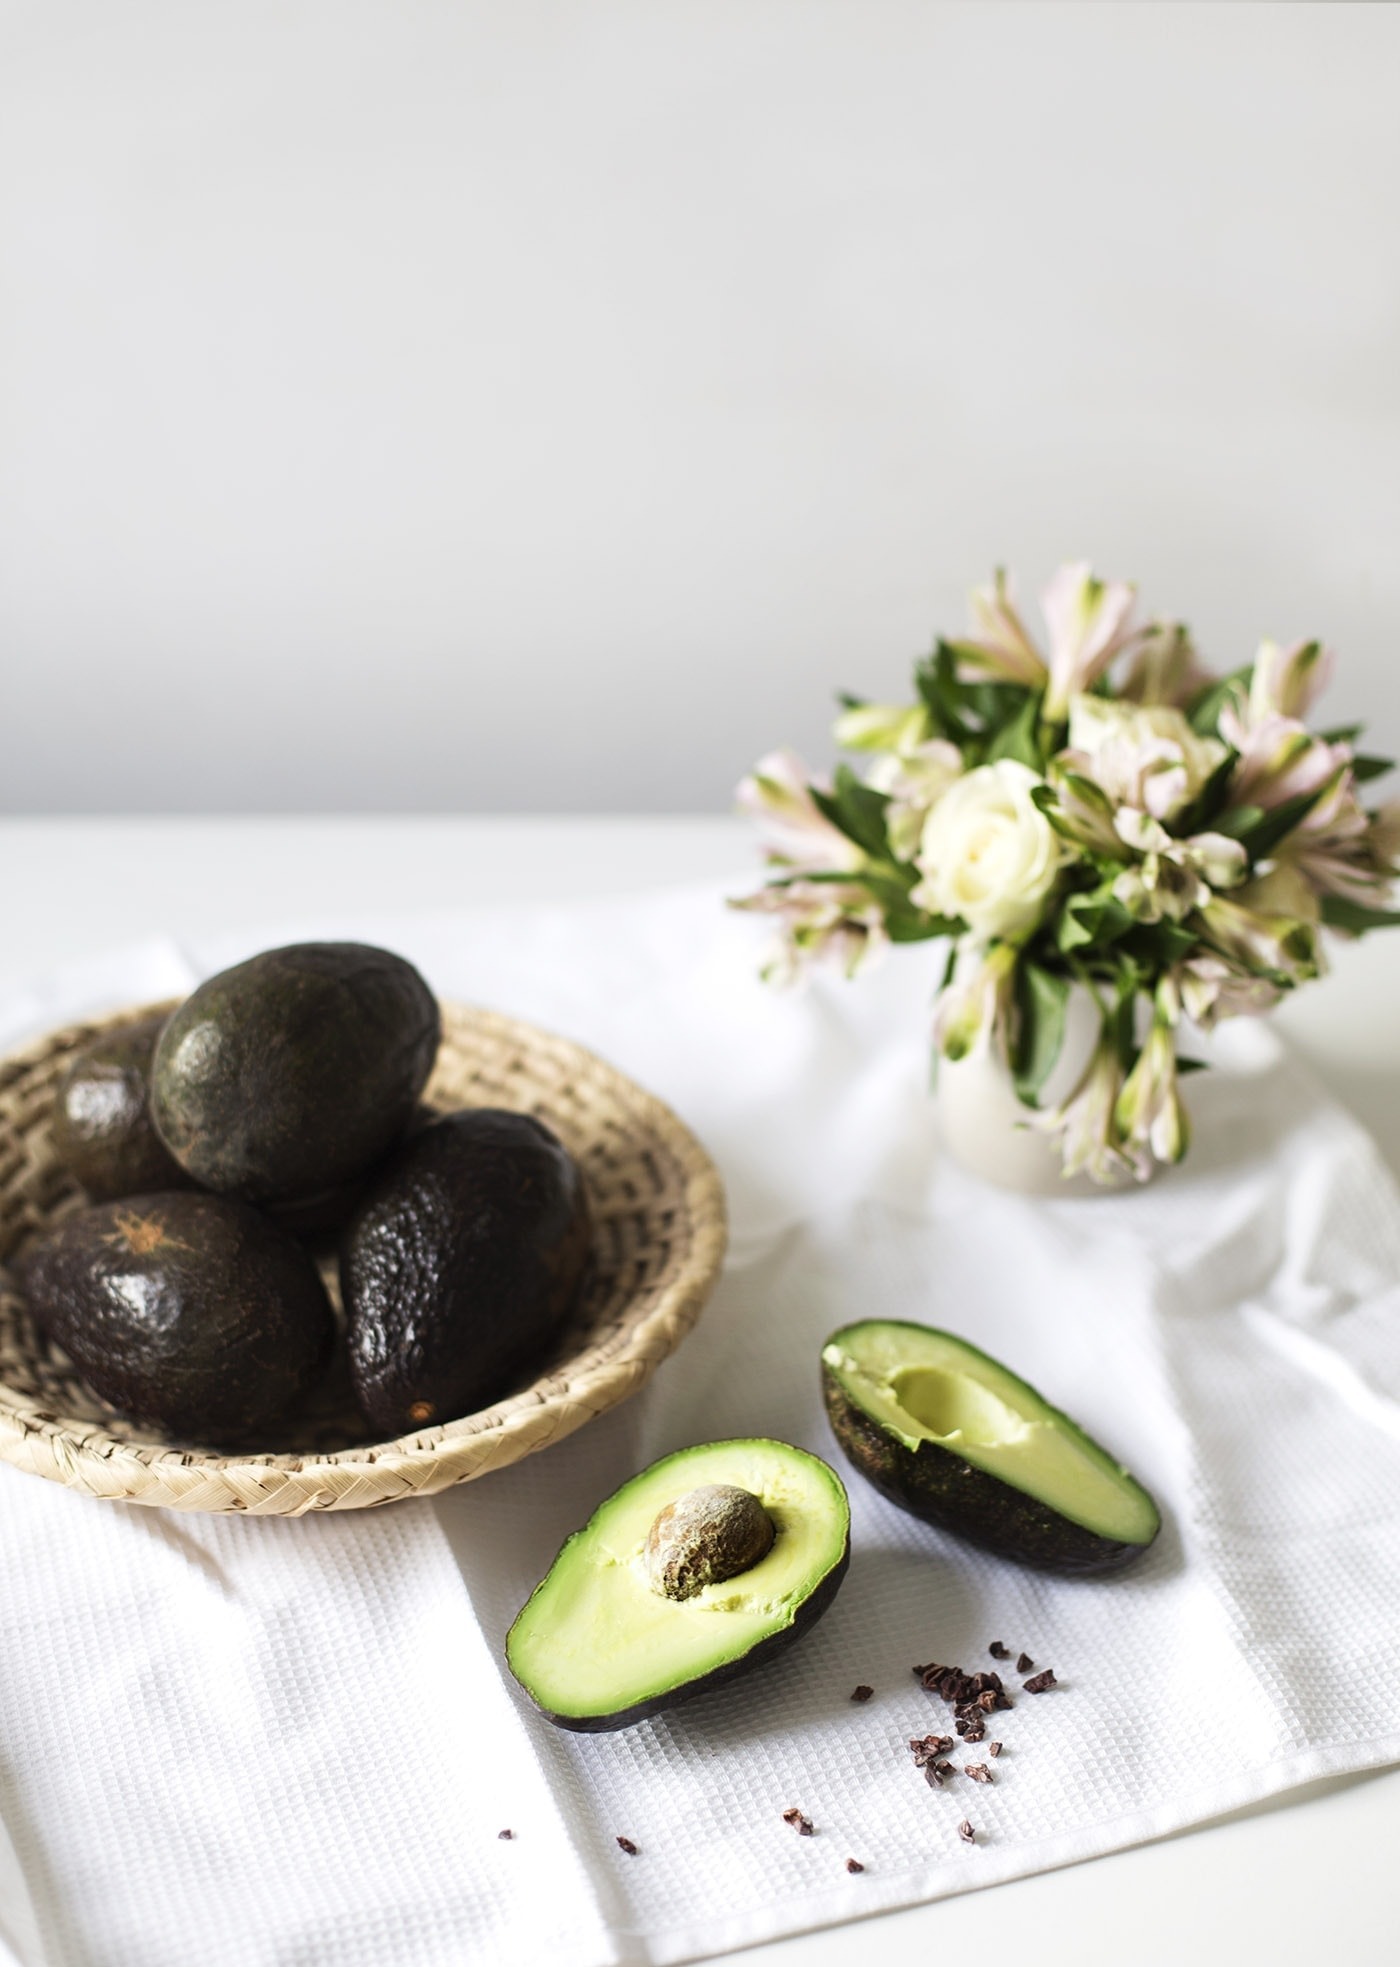 raw-avocado-chocolate-tart-paleo-dessert-recipe-gluten-free-dairy-free-healthier-sweet-treats